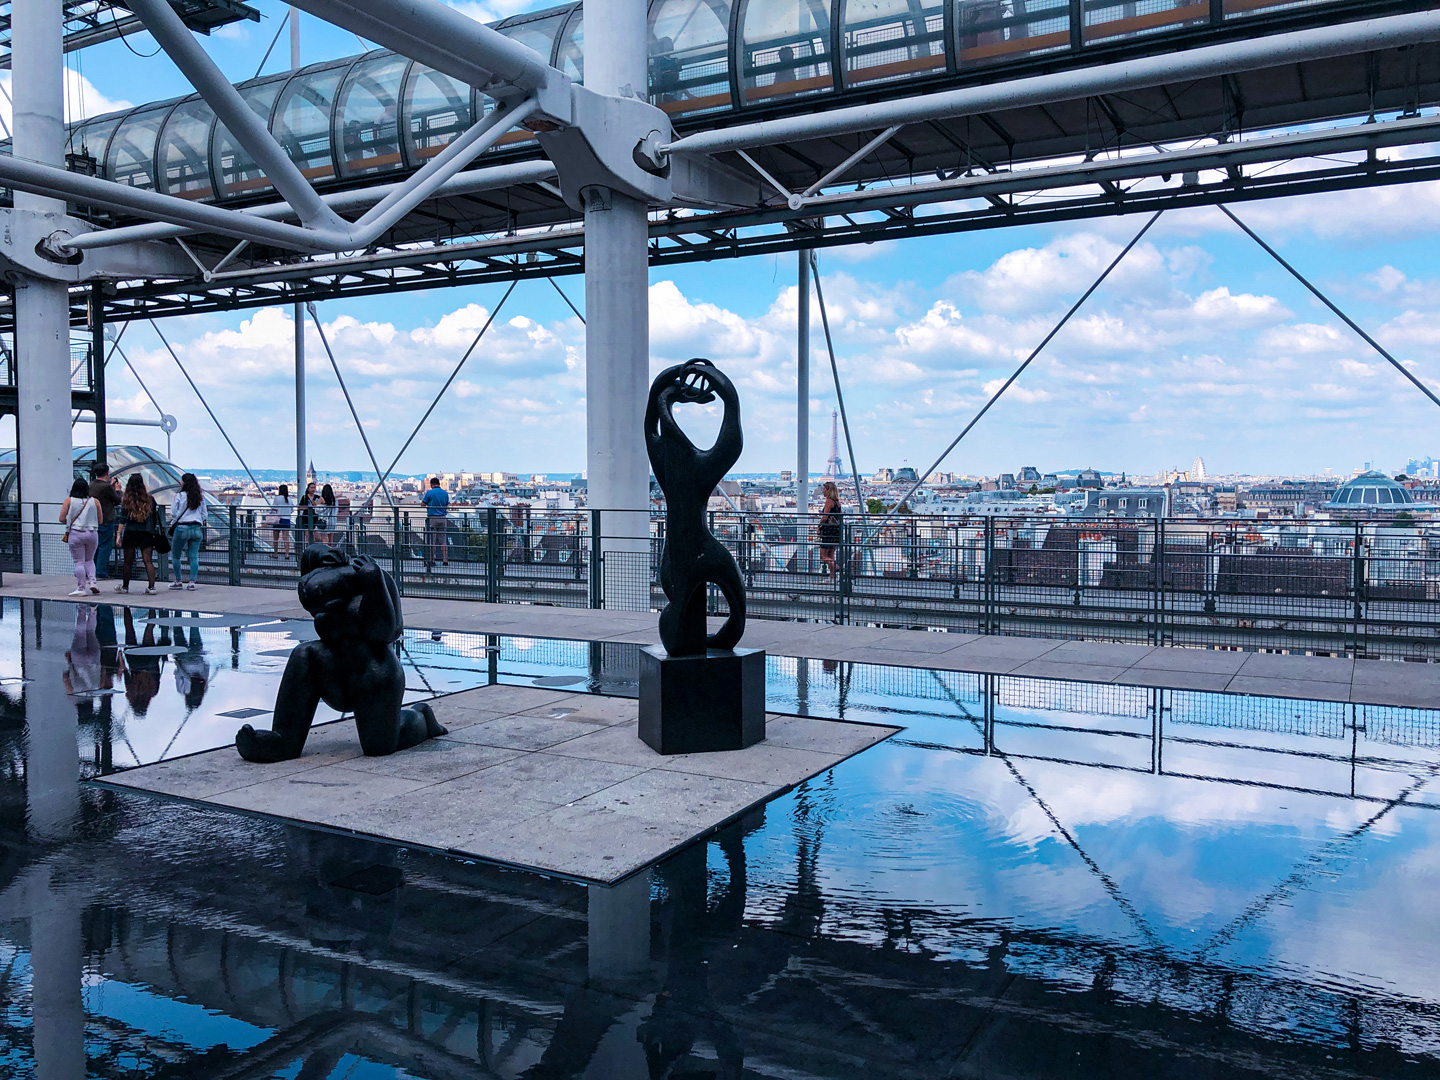 view from the top of the Centre Pompidou in Paris; with sculptures, reflecting pool, passersby, and skyline